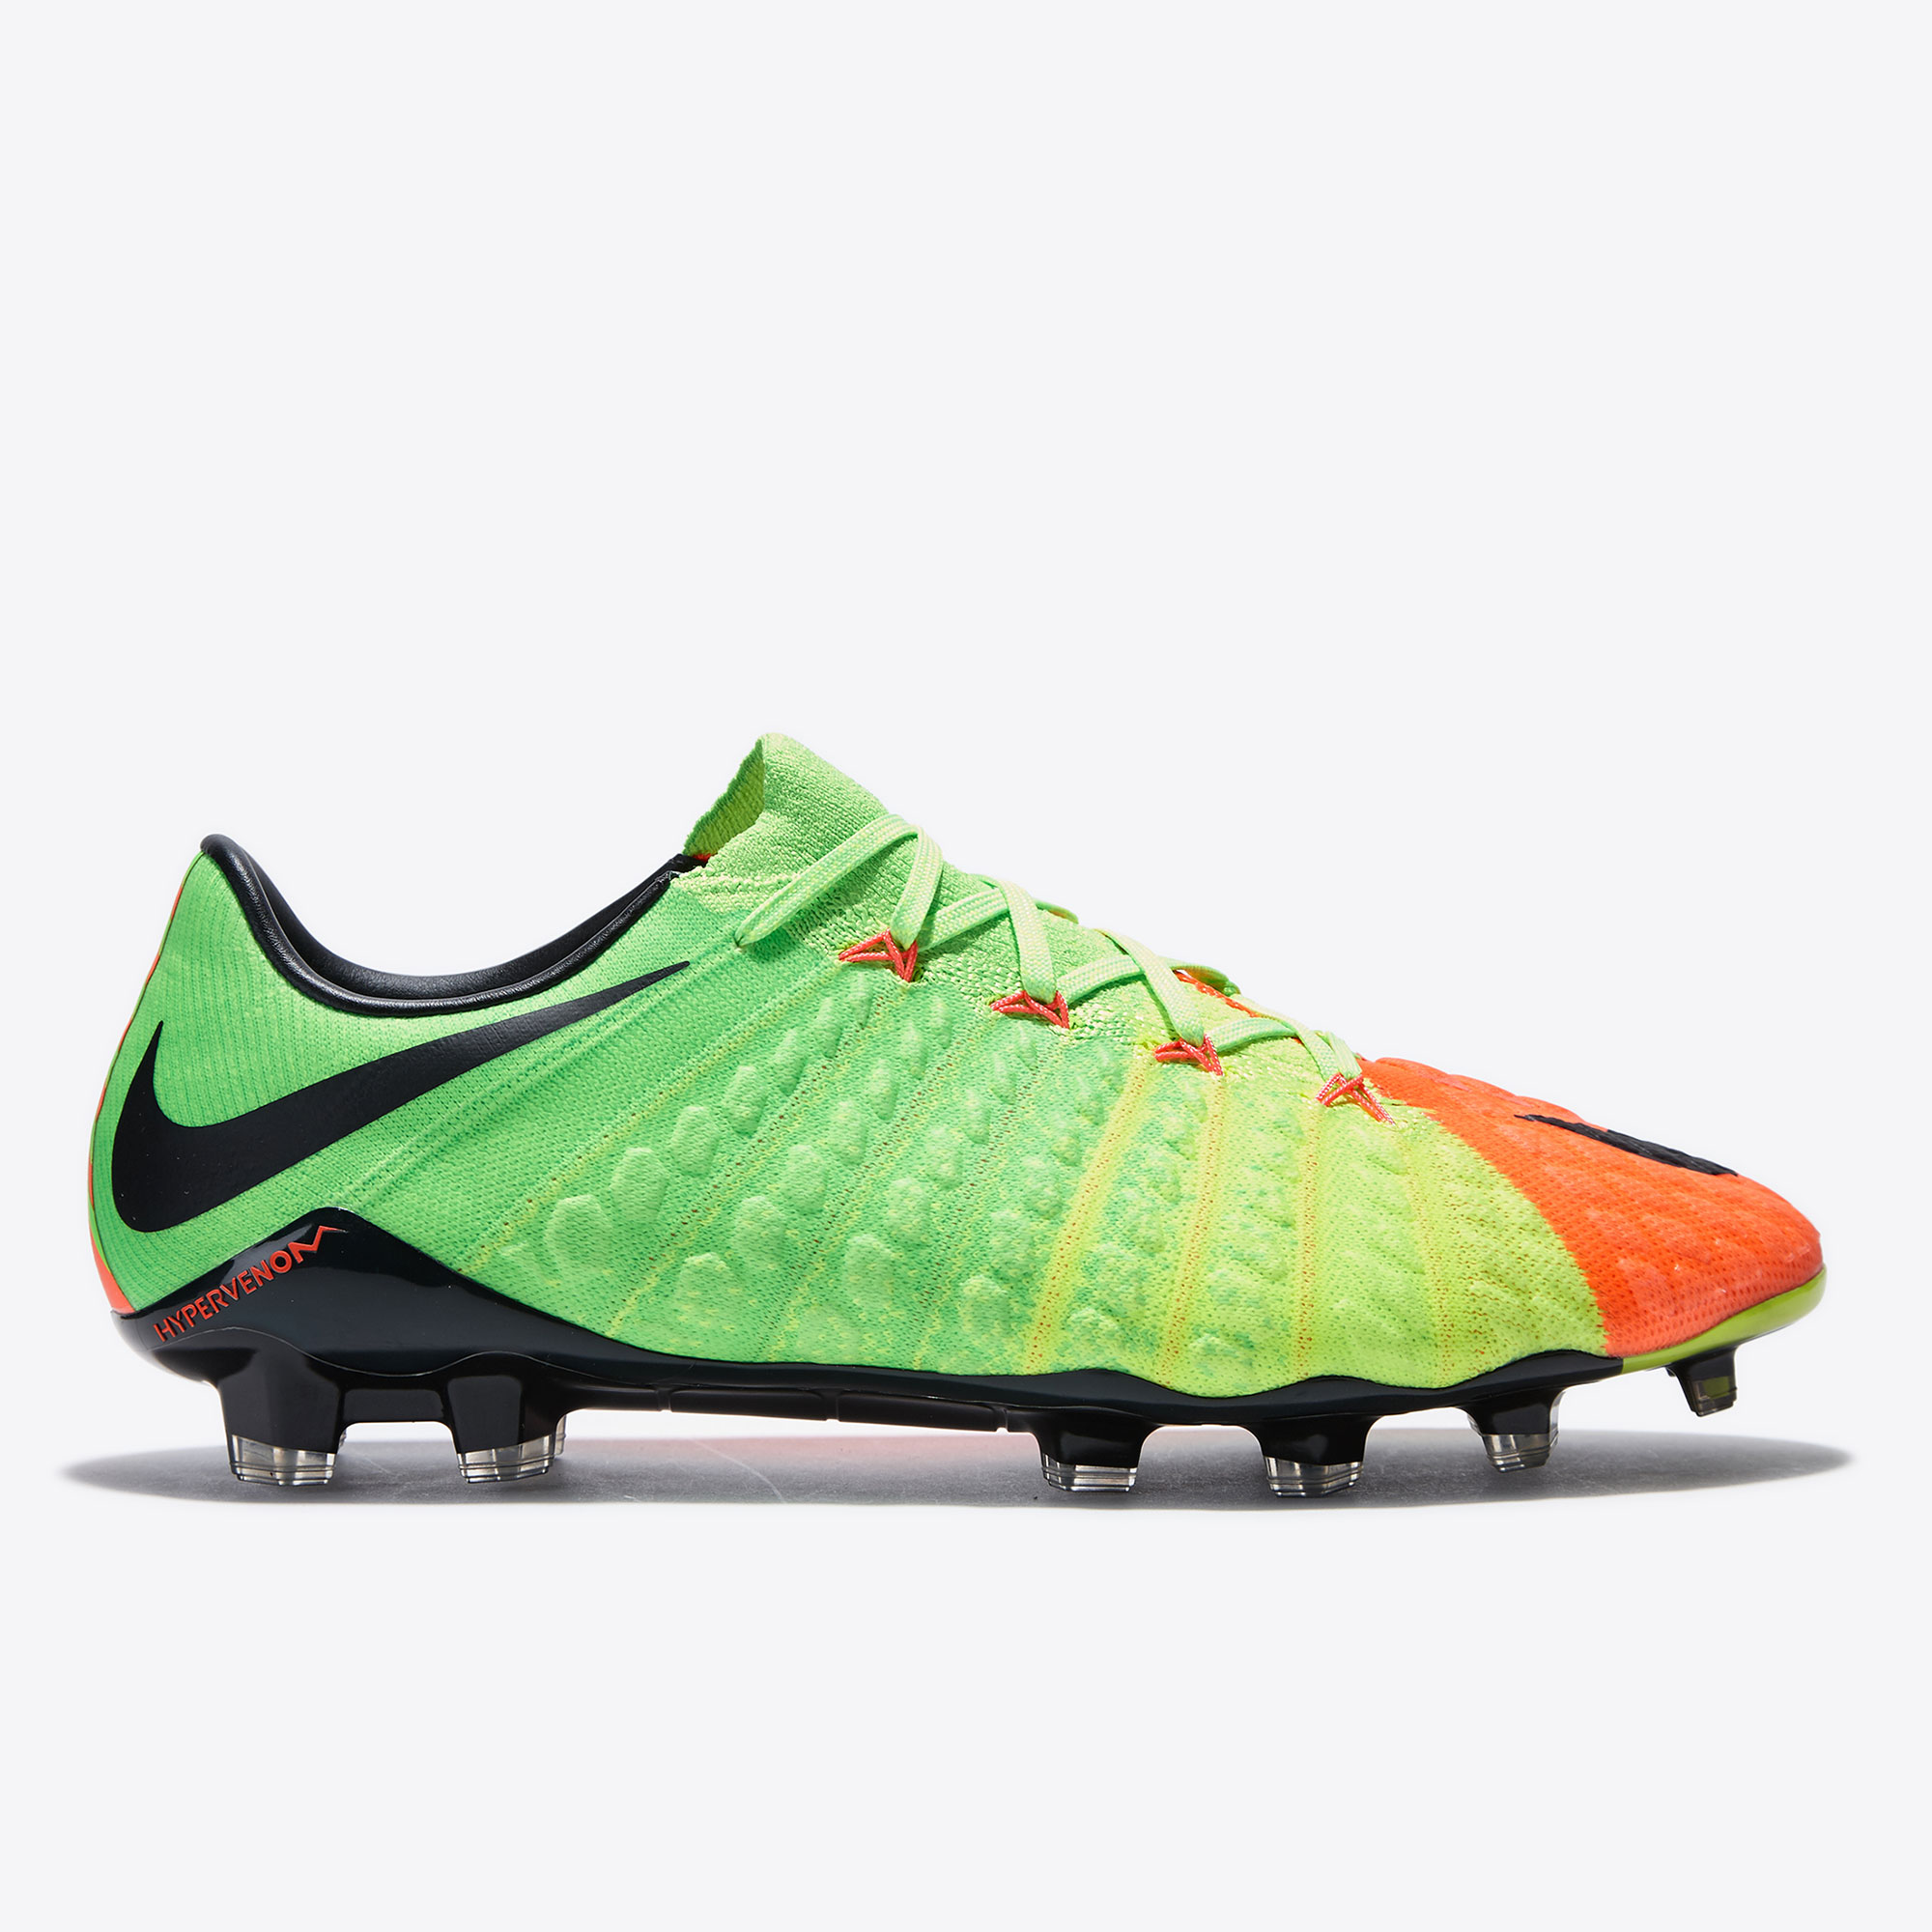 Nike Hypervenom Phinish II FG Electric Green